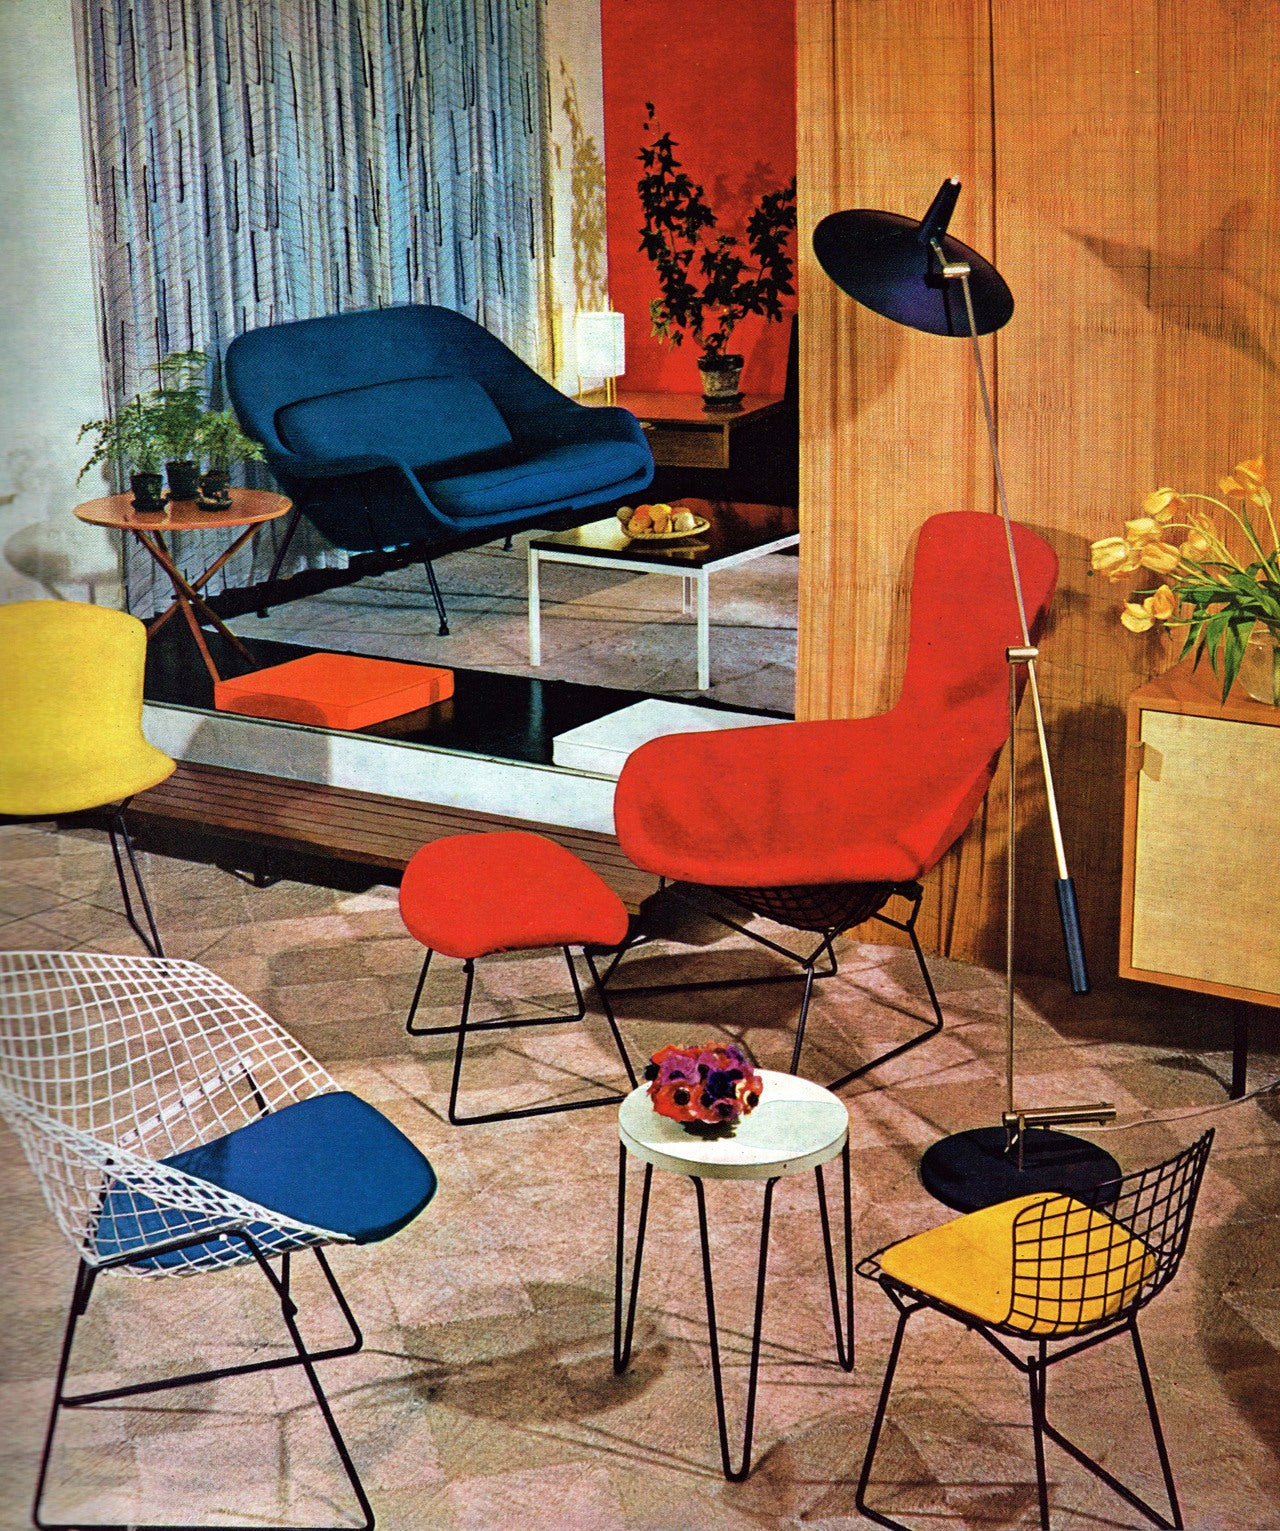 Period photograph of a sixties living room with bright red, yellow and blue metal chairs